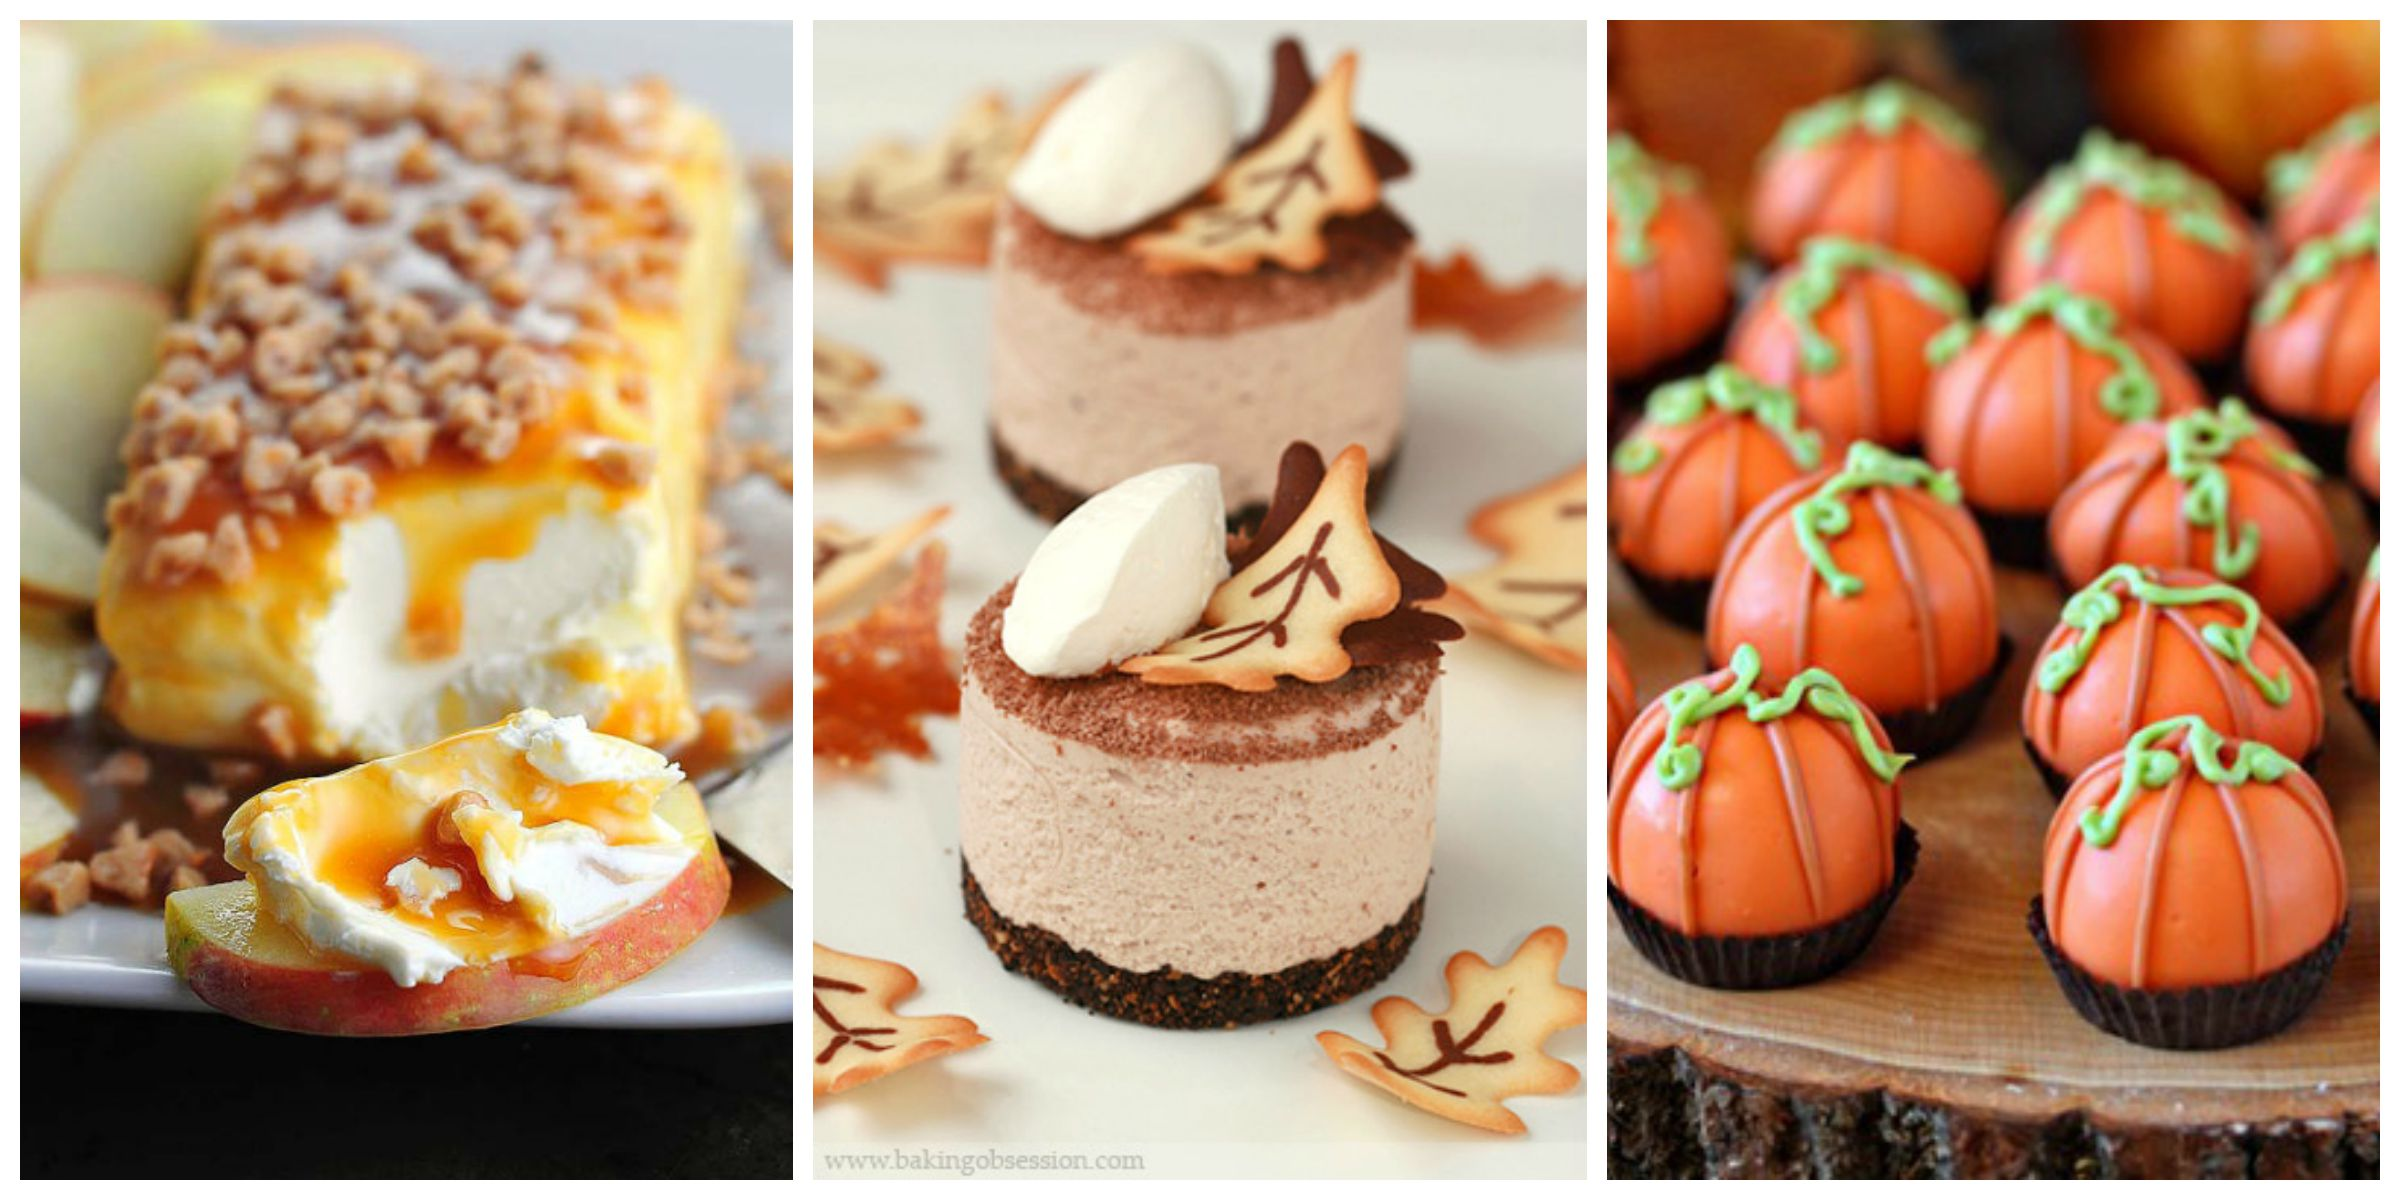 35 easy fall dessert recipes best treats for autumn parties Fall decorating ideas for dinner party